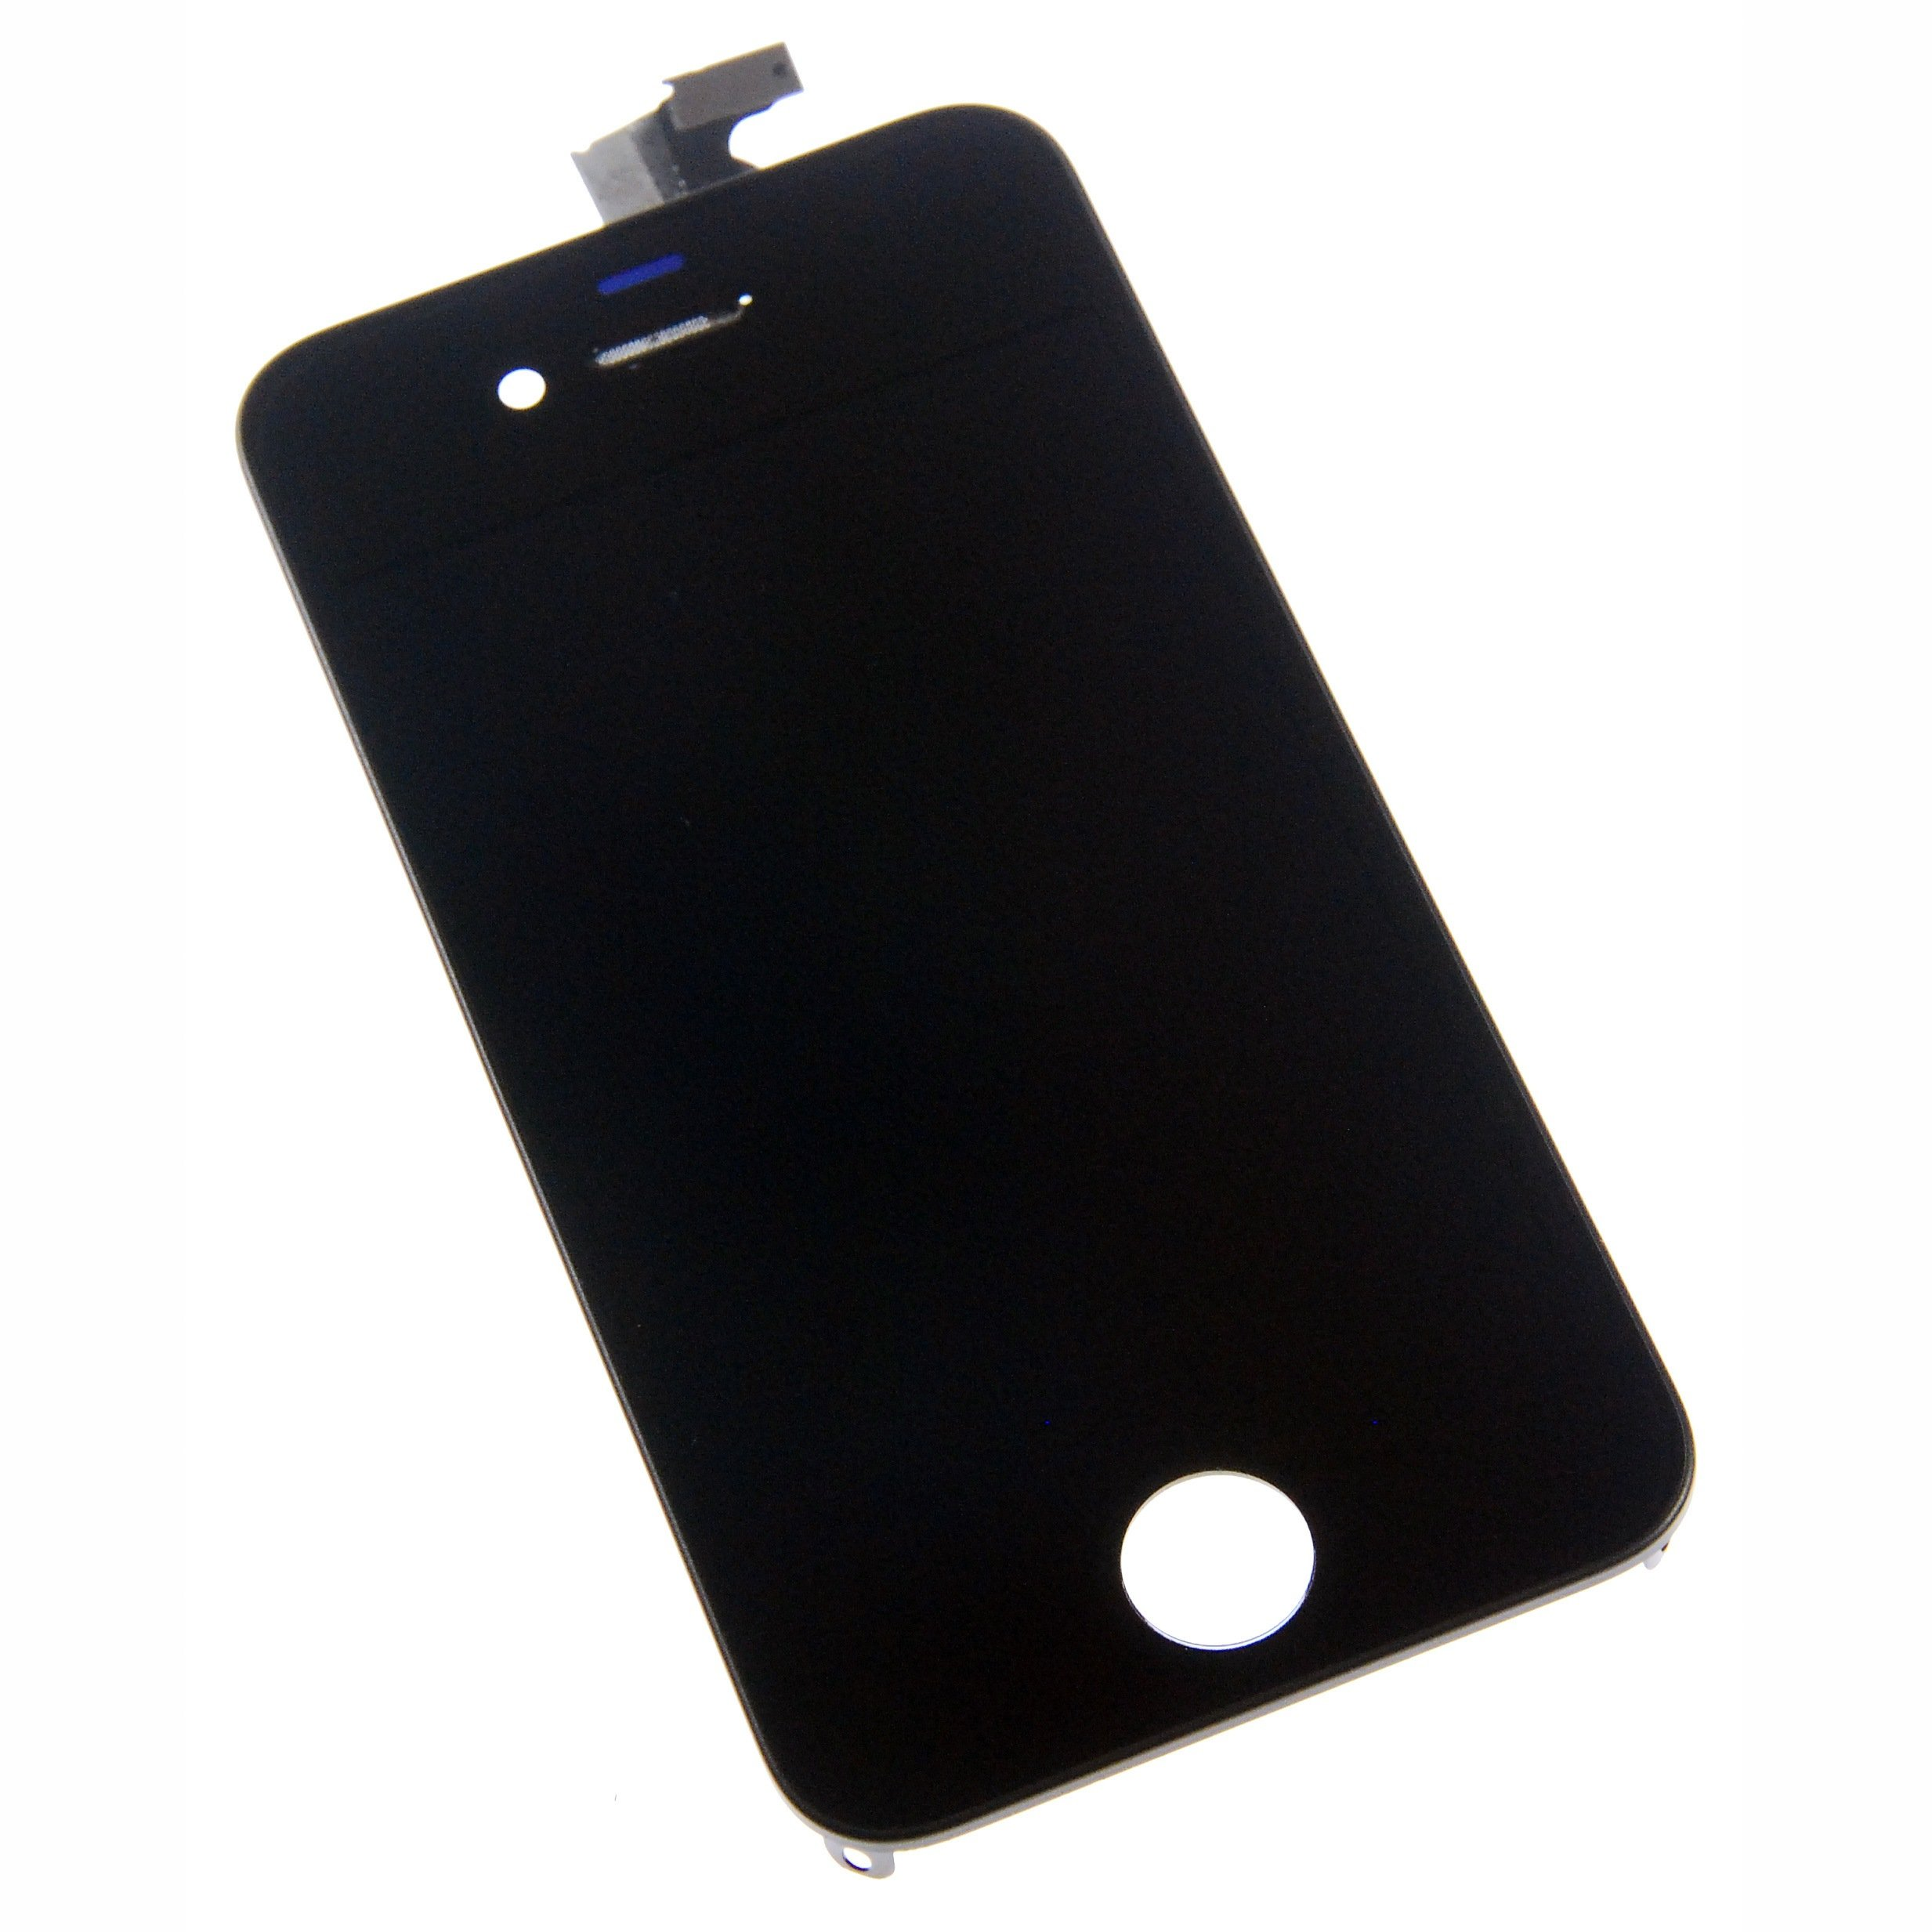 iPhone 4 (GSM/AT&T) Screenの画像